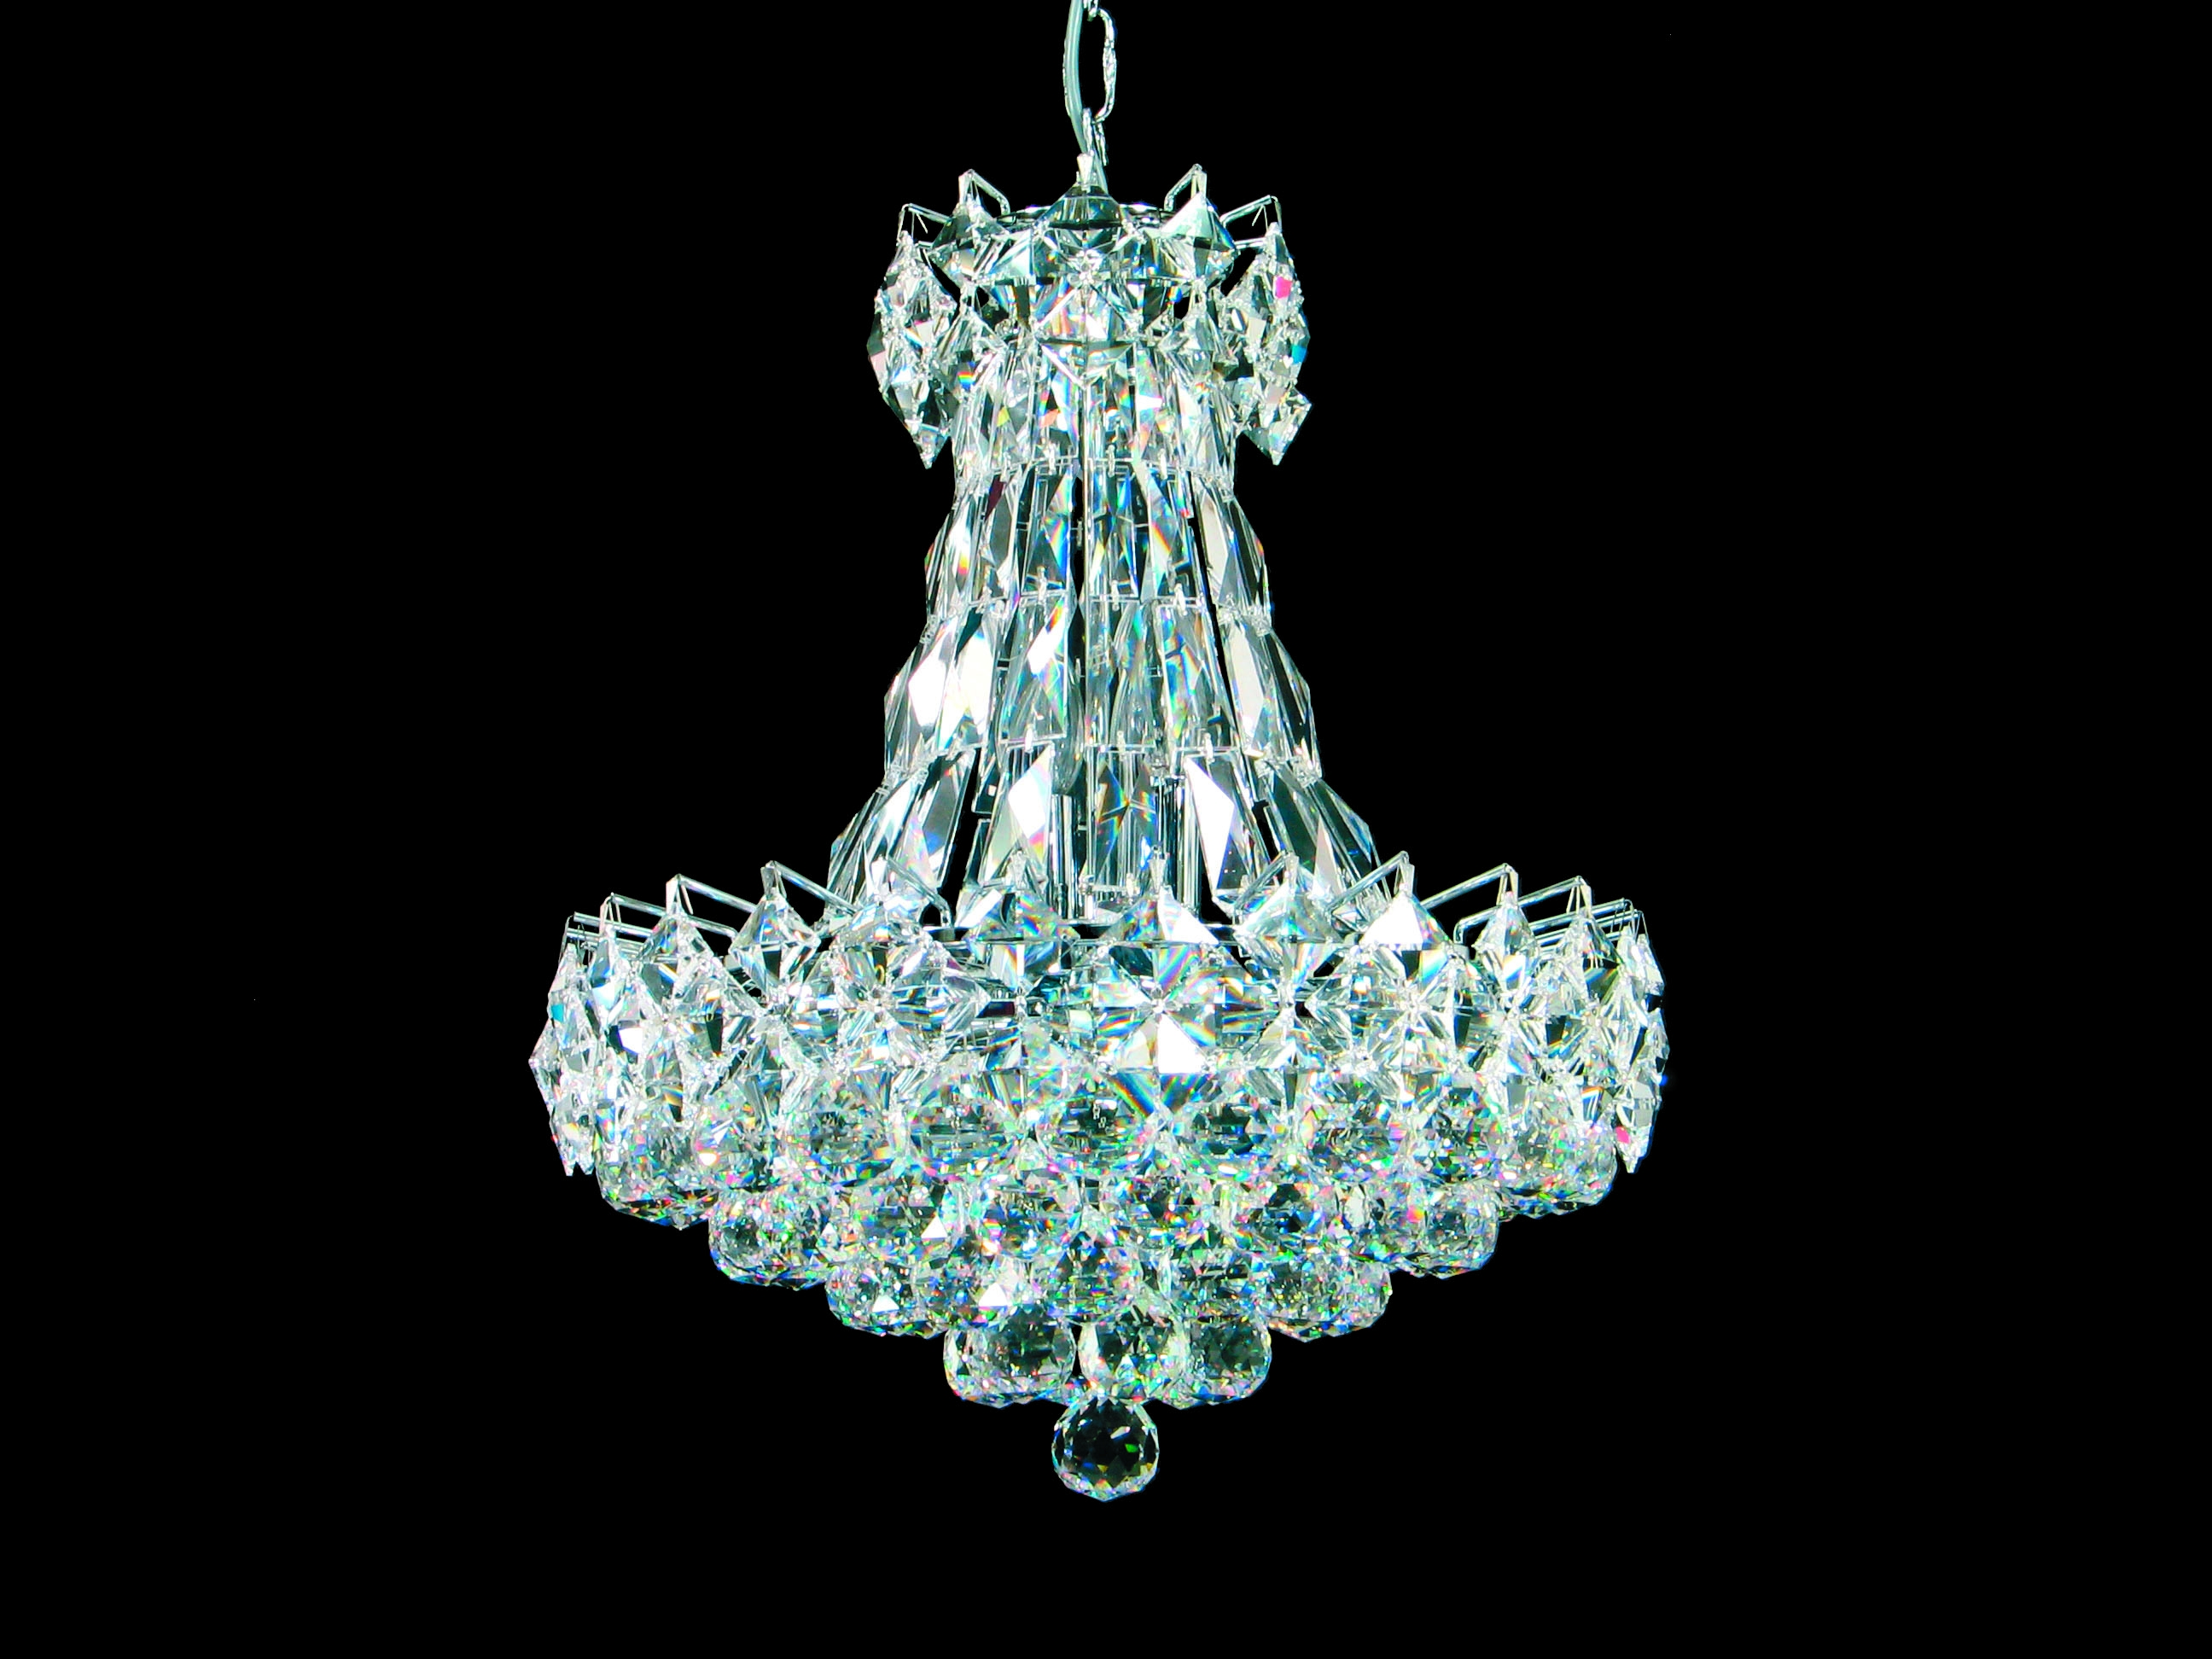 Chandelier lead crystal chandeliers 1 of 15 photos - Unique crystal chandeliers ...